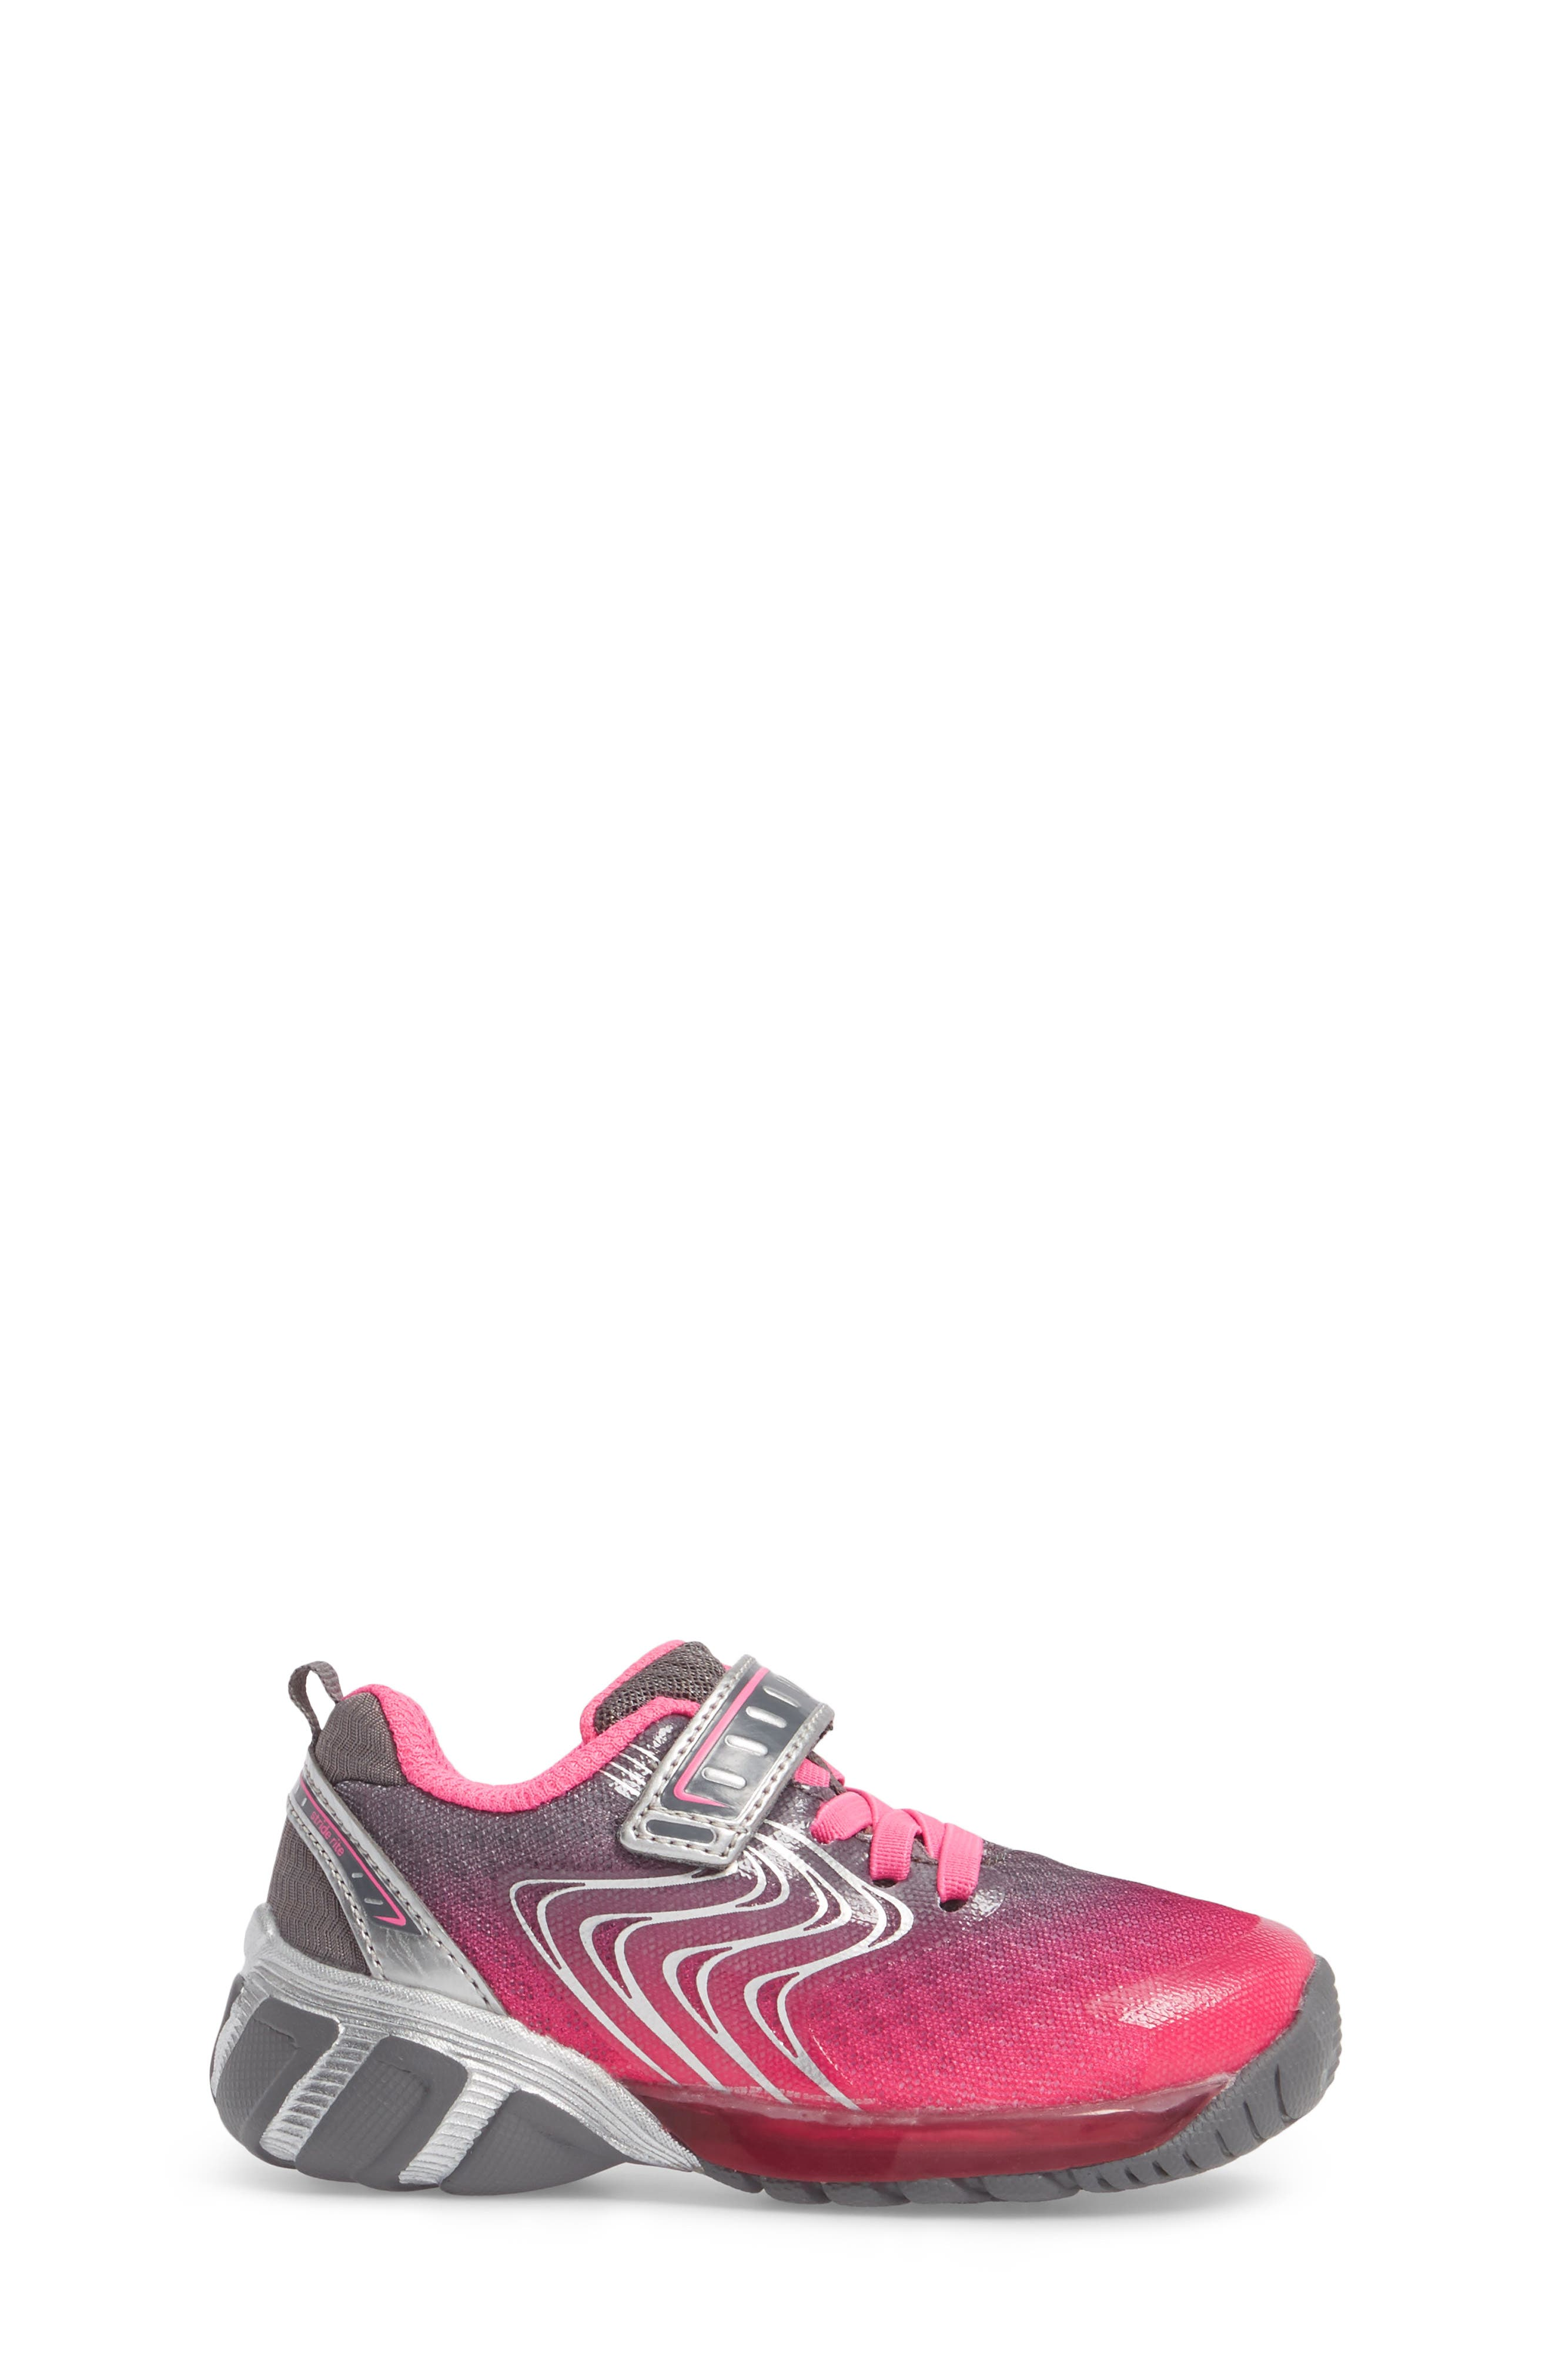 Lights Lux Light-Up Sneaker,                             Alternate thumbnail 3, color,                             Pink Synthetic/ Textile